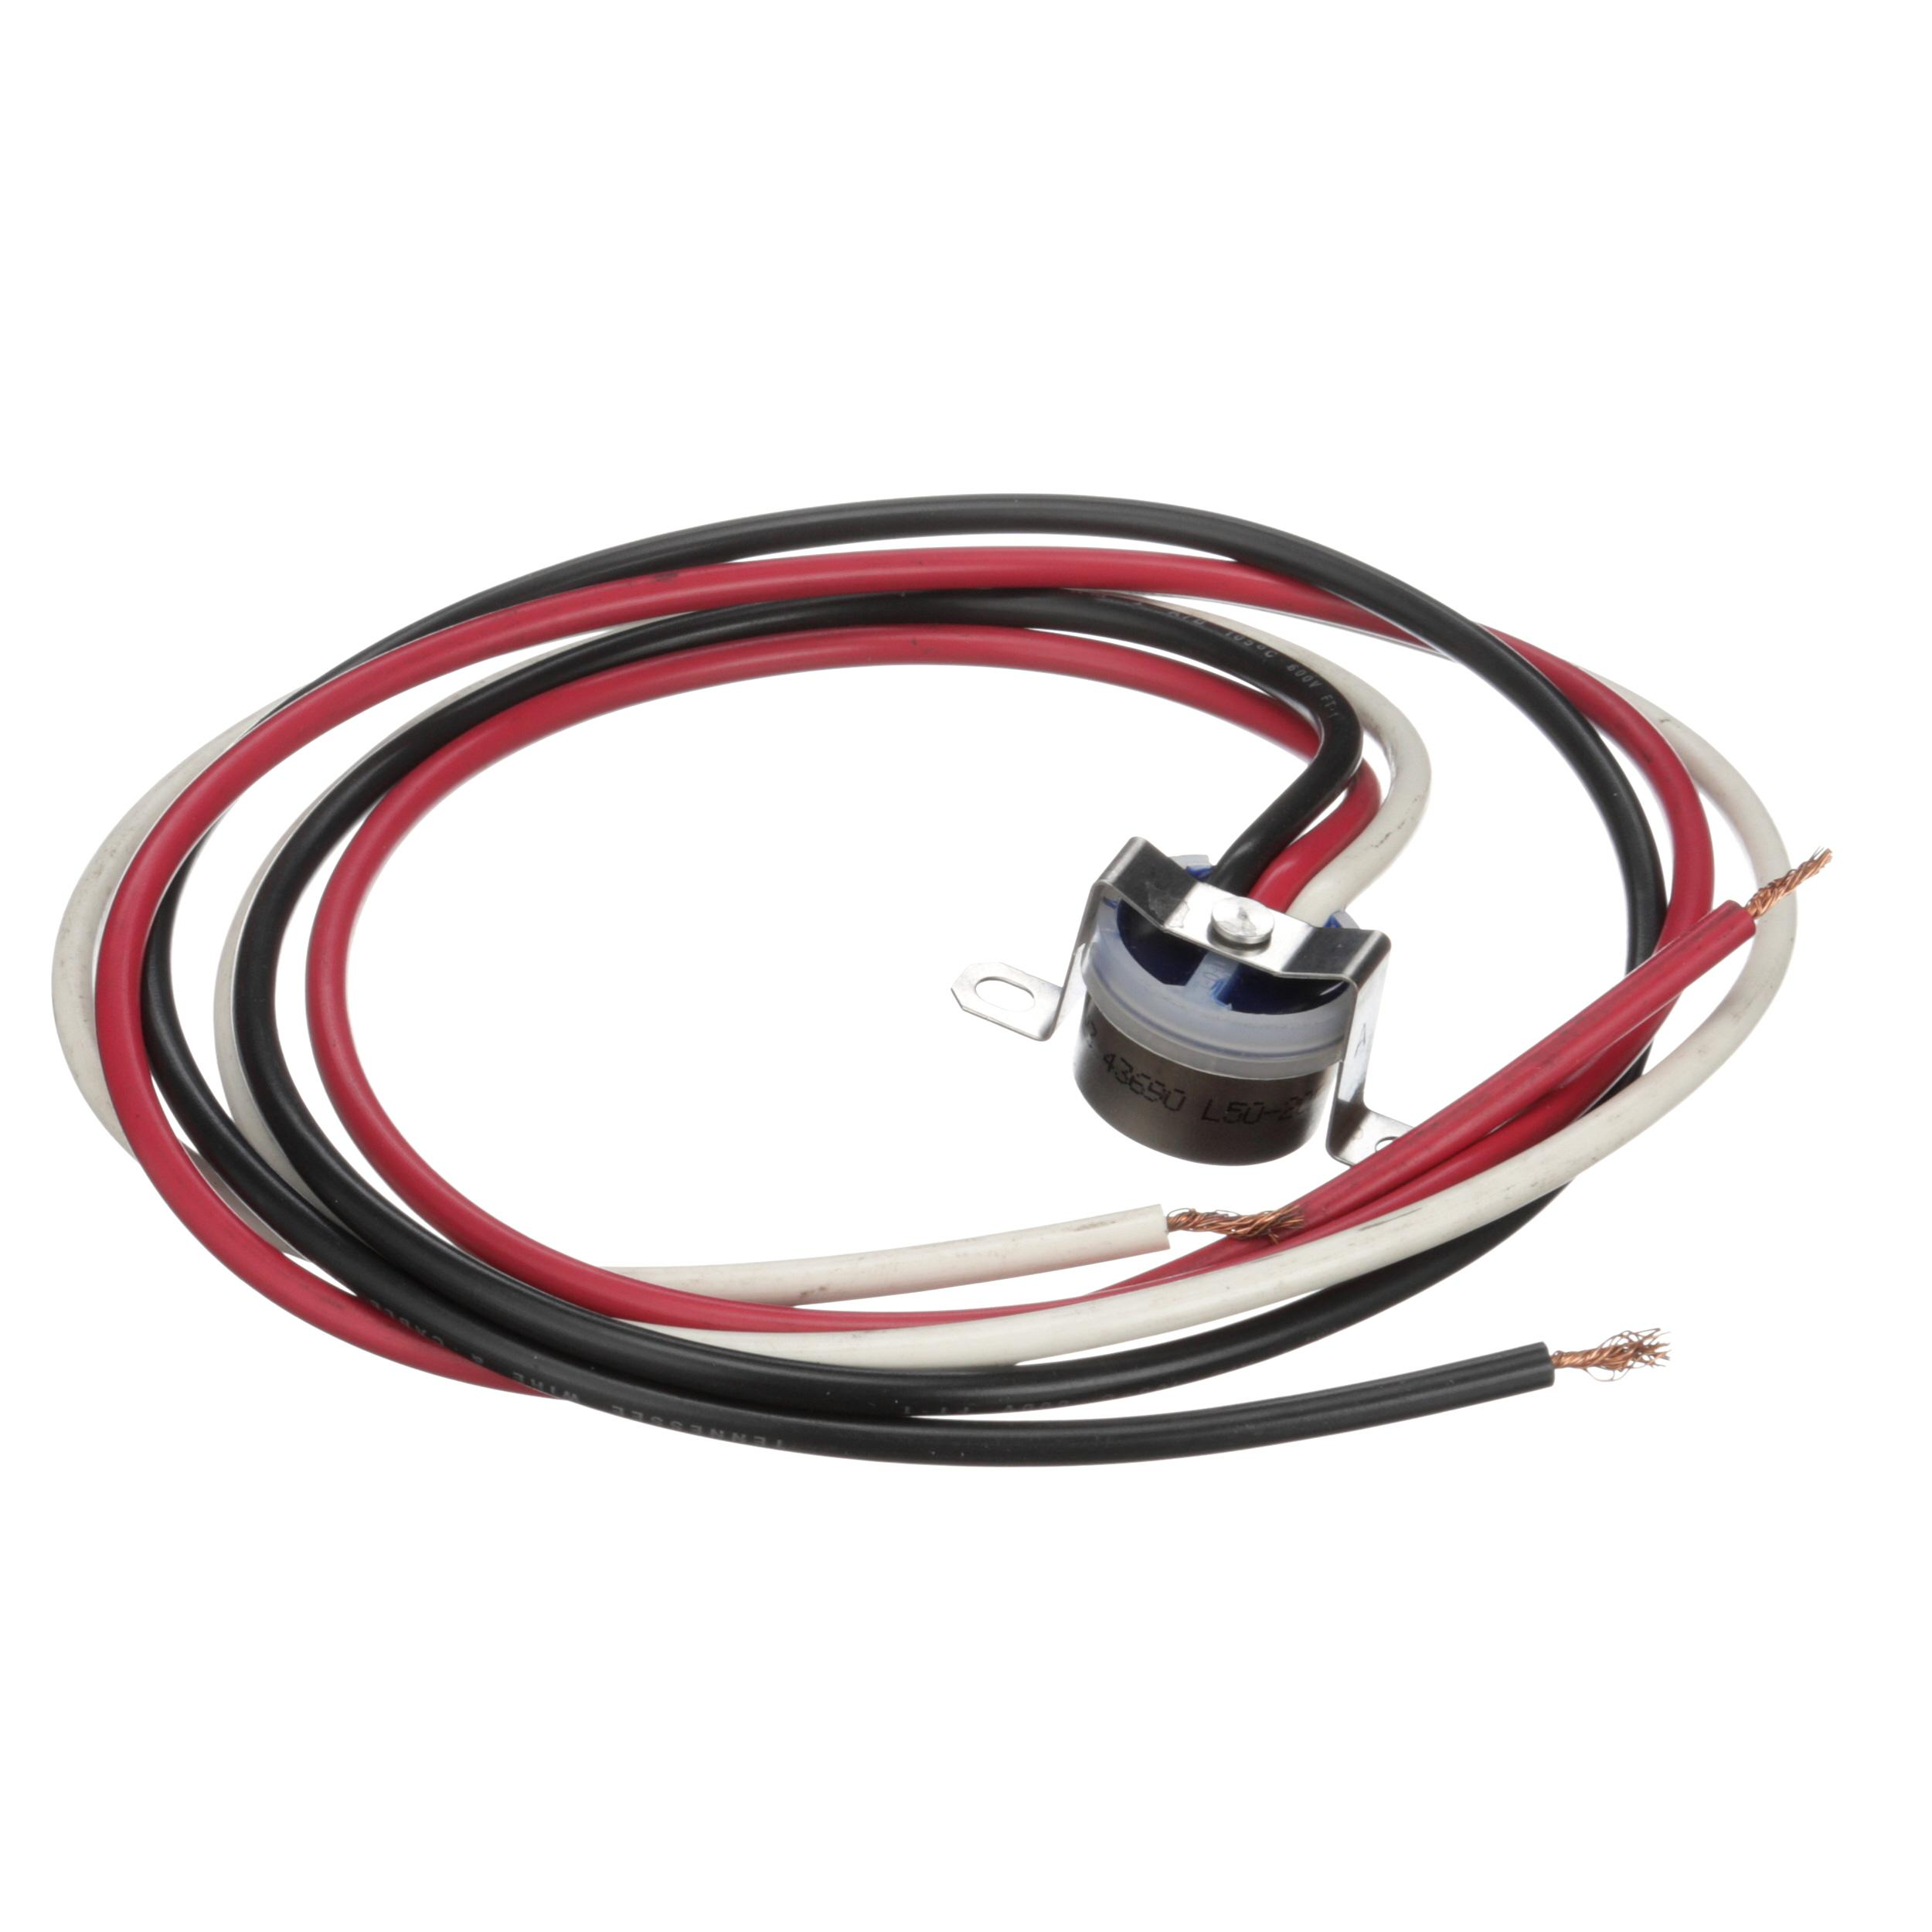 small resolution of master bilt products fan delay term t stat nl 001781 3 wires red wiring black white n l